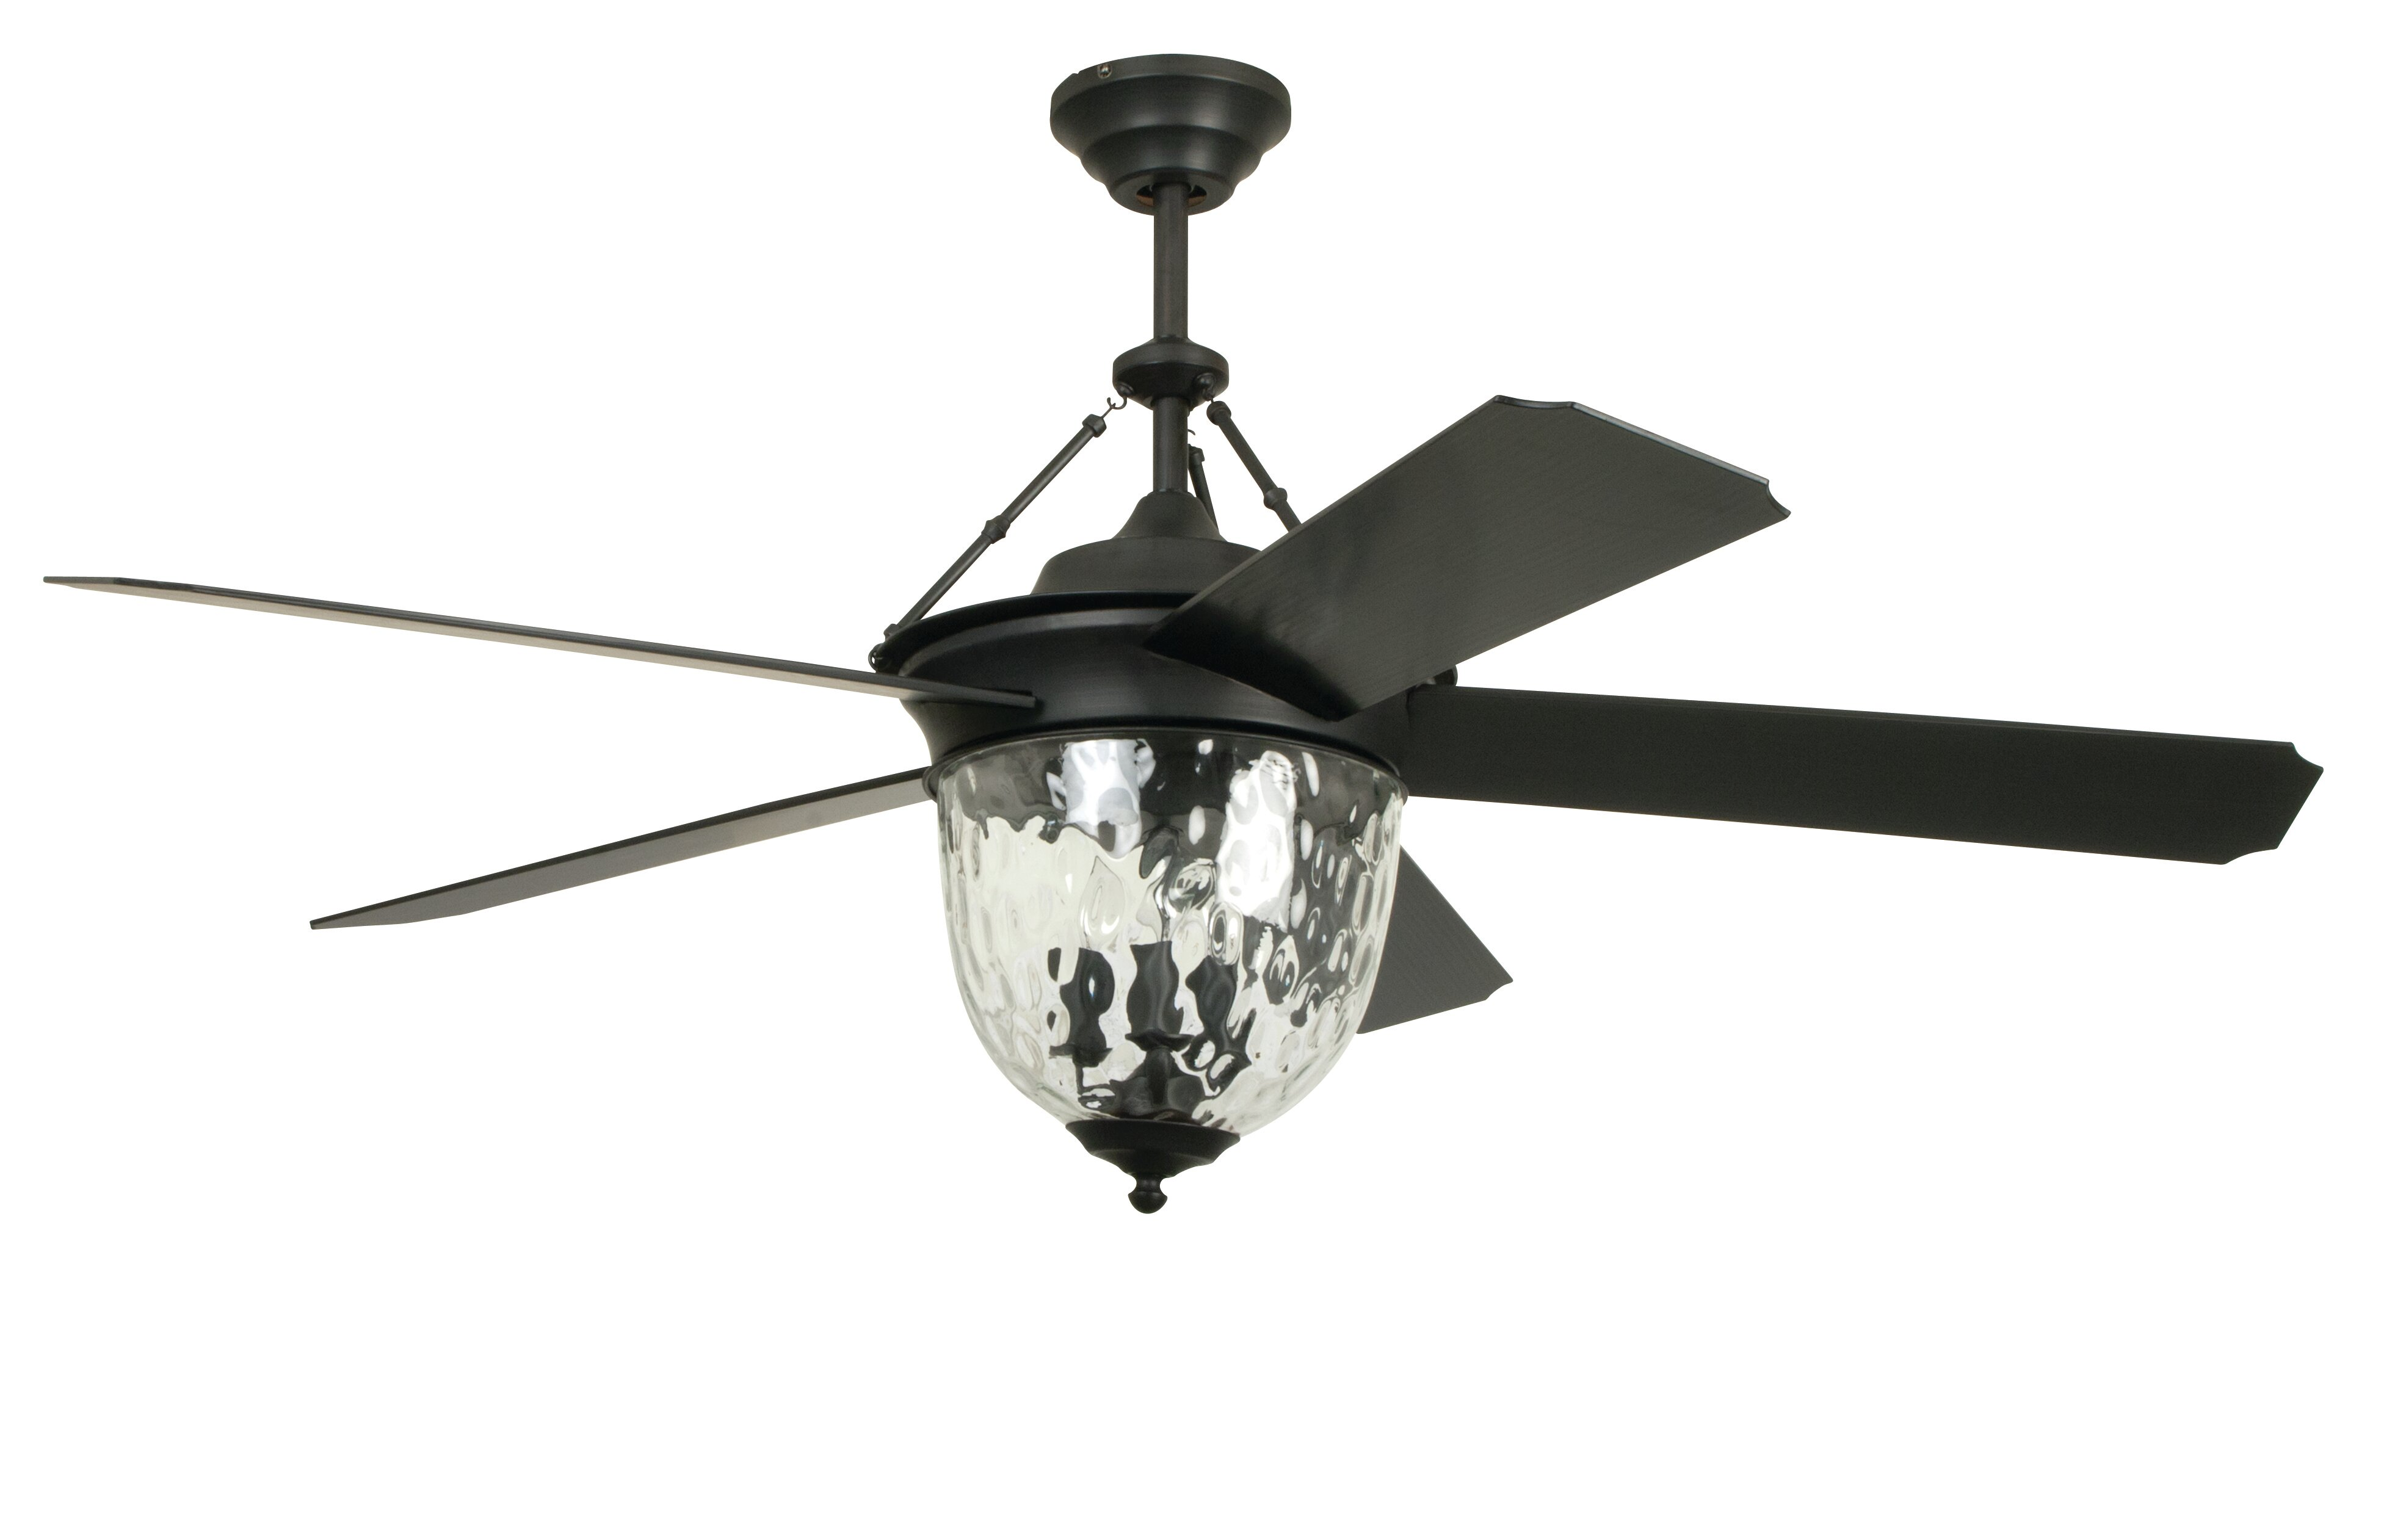 52 fairmead 5 blade ceiling fan with wall remote reviews birch lane mozeypictures Images